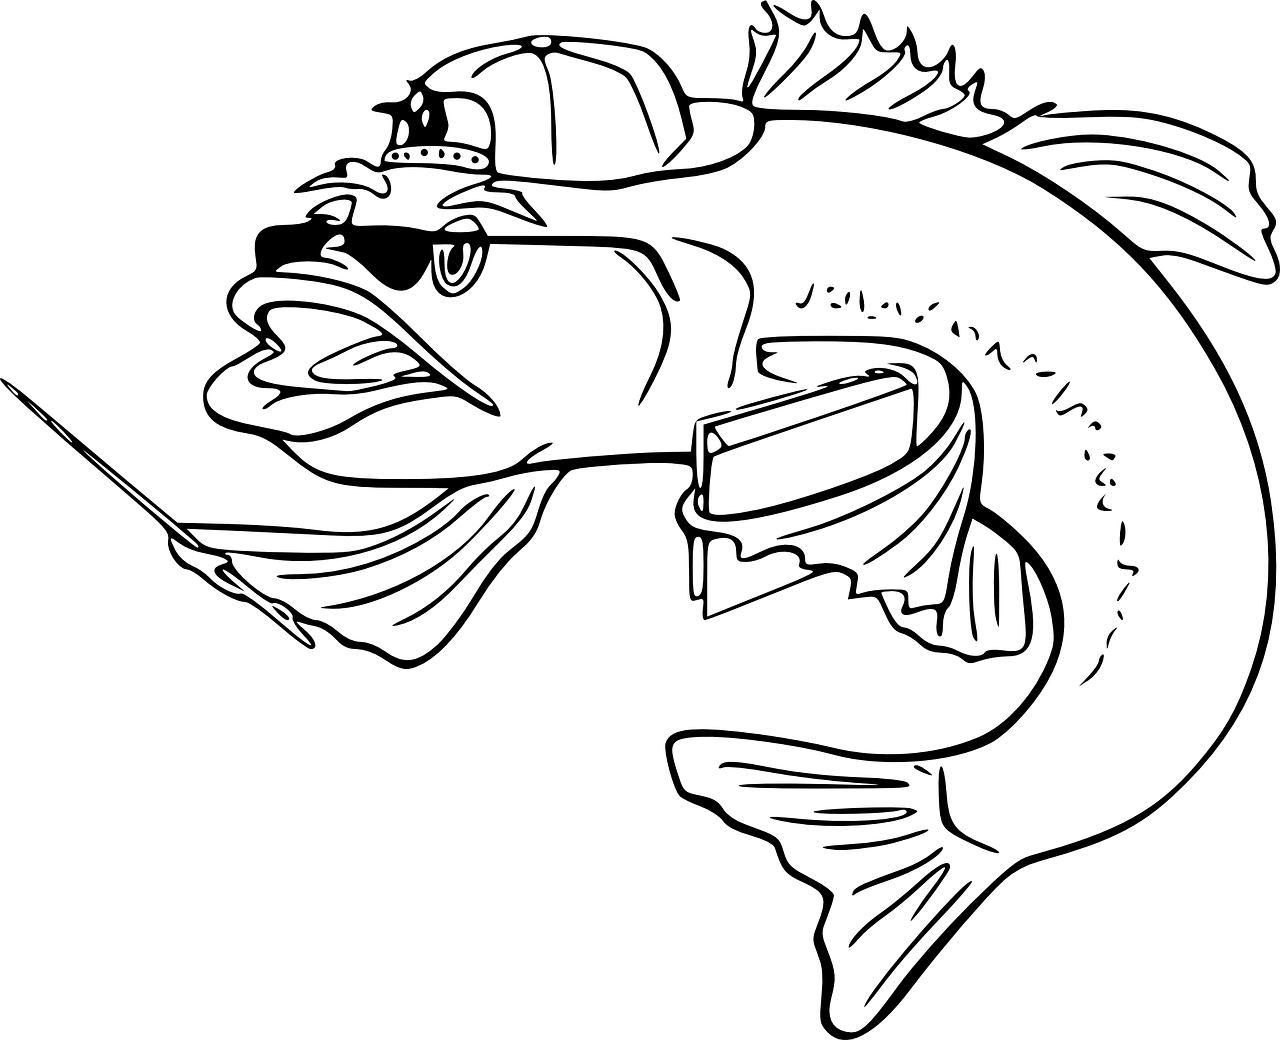 Fish Hook Mouth Cartoon